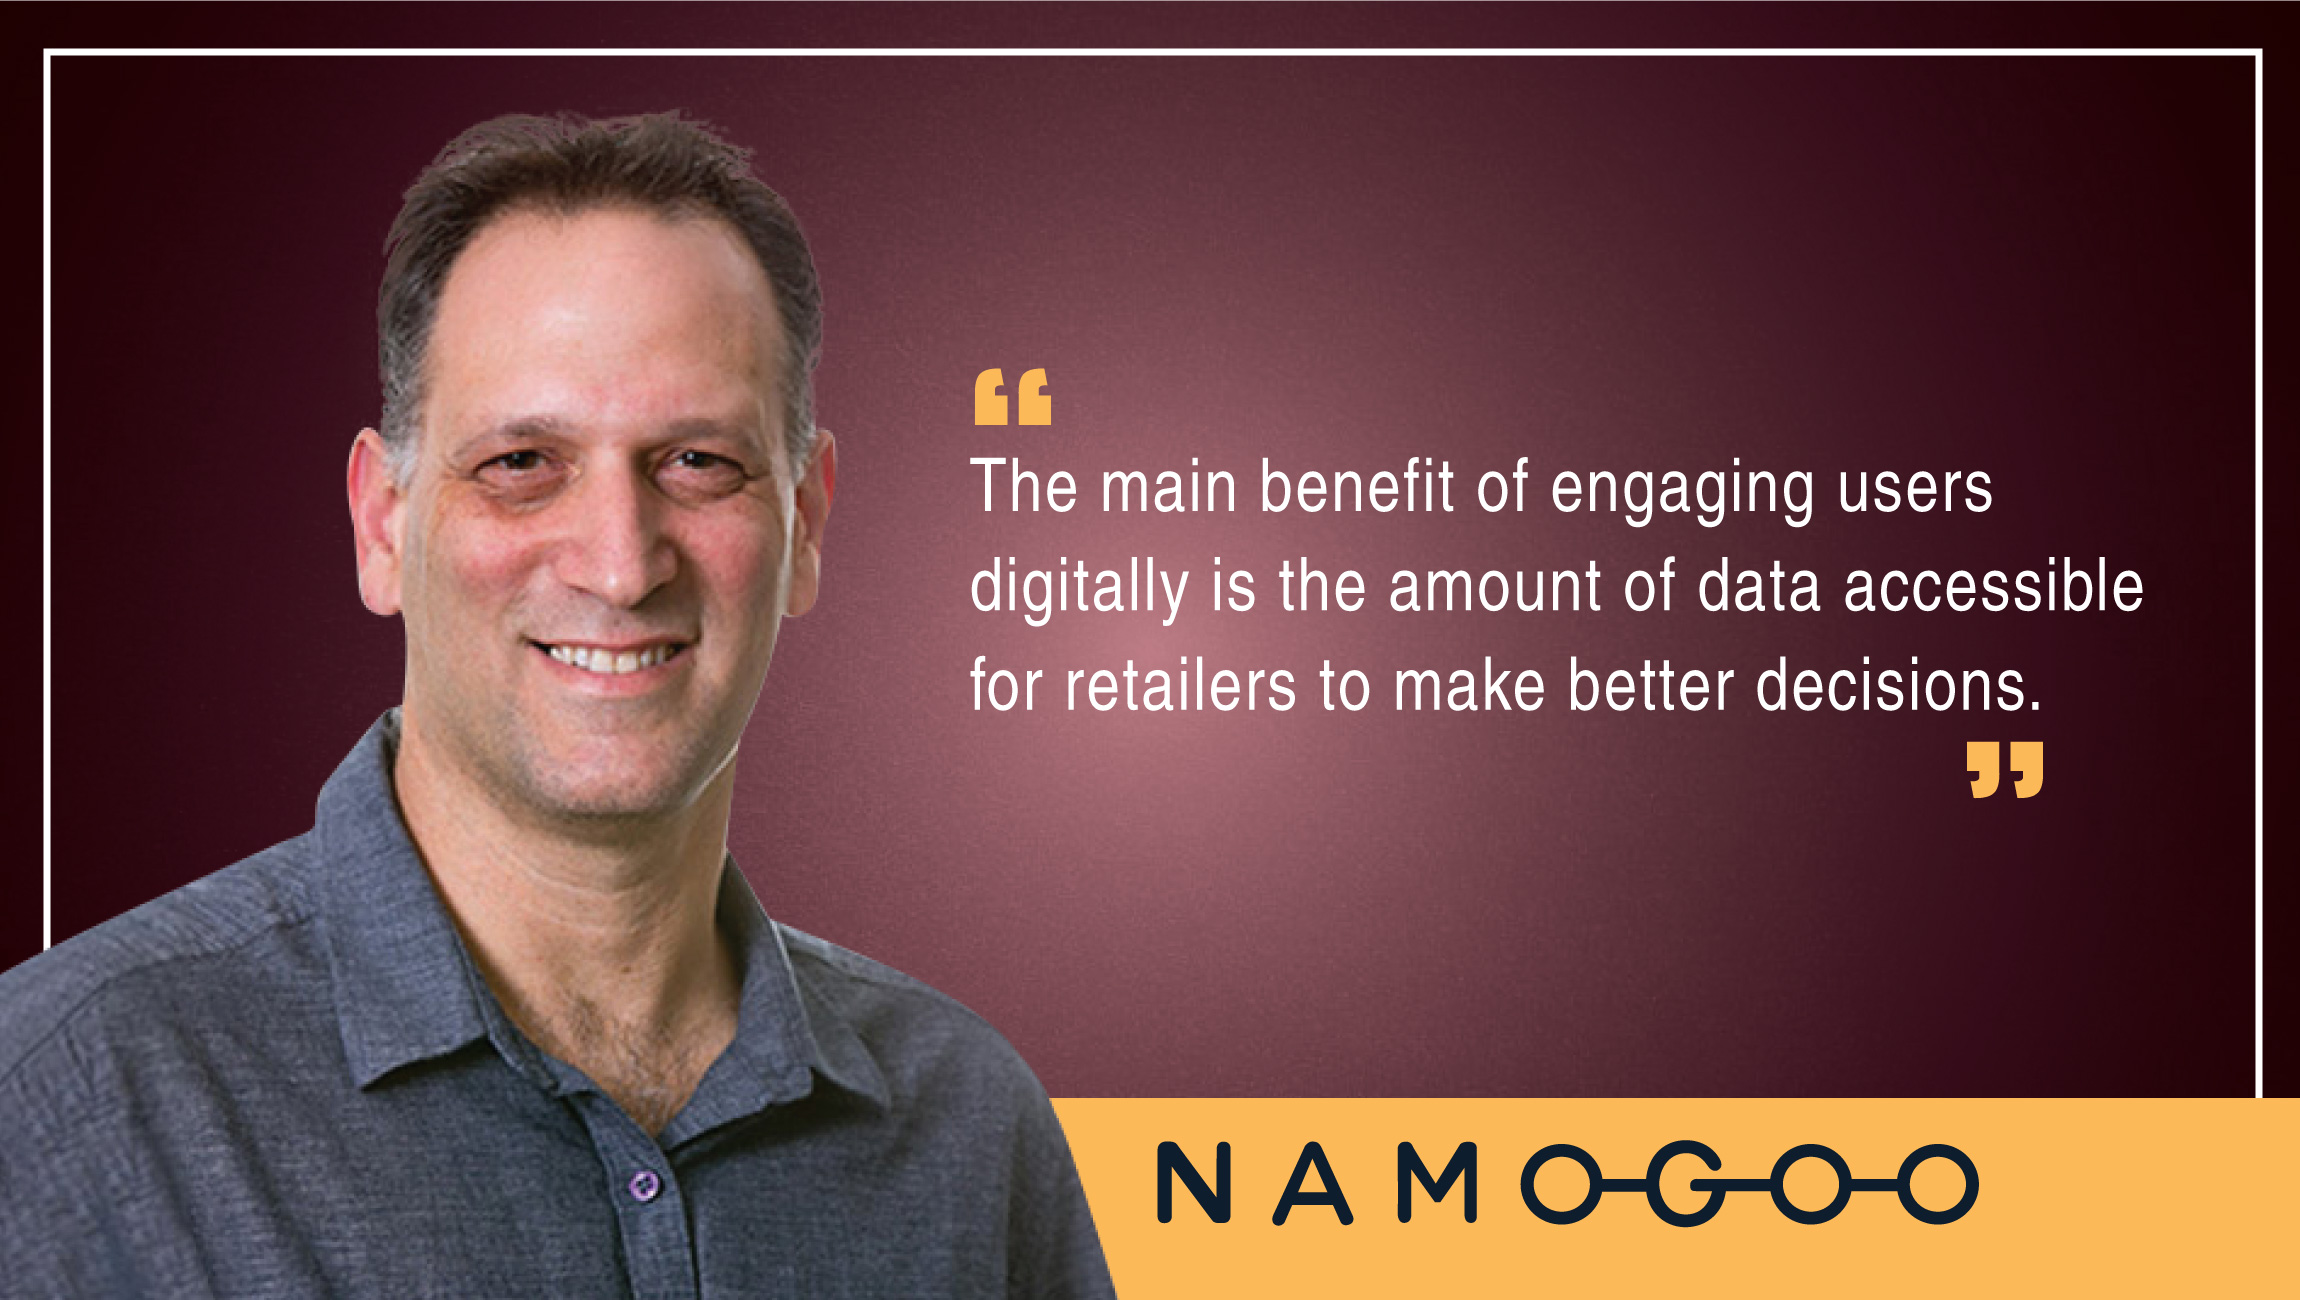 Chemi Katz, Co-founder and CEO at Namogoo